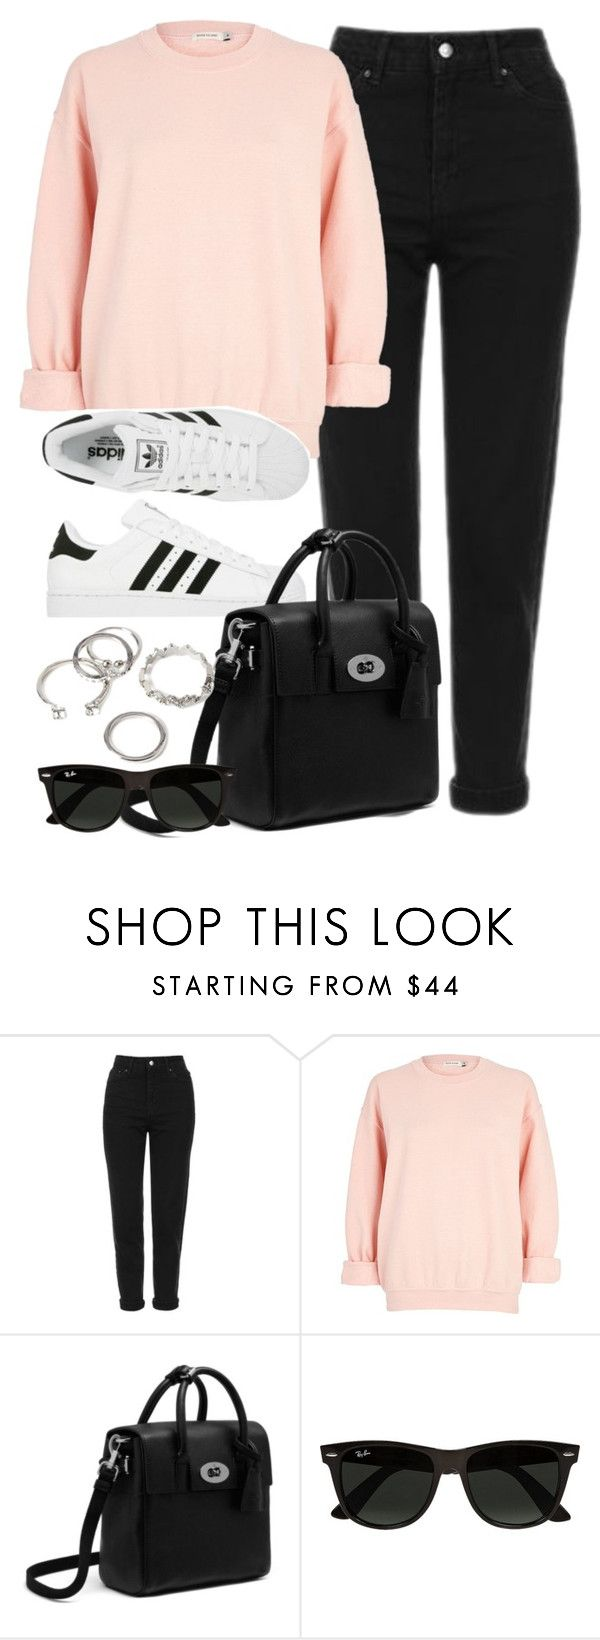 """""""Style #11507"""" by vany-alvarado ❤ liked on Polyvore featuring Topshop, River Island, adidas, Ray-Ban and Forever 21"""